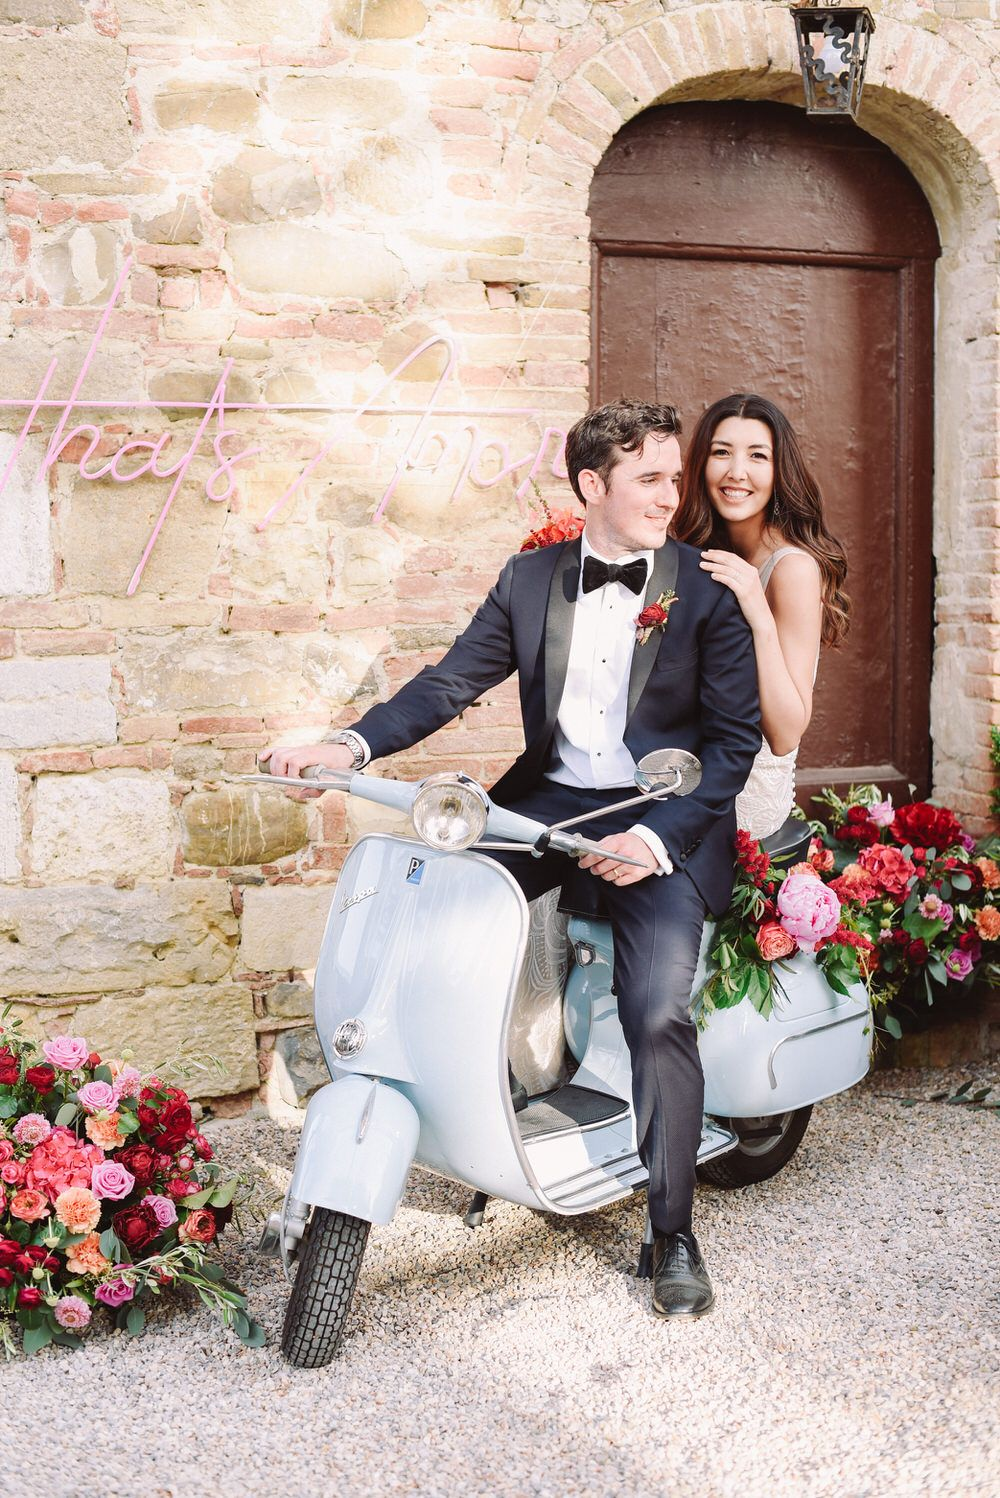 Set in an ancient Italian villa, this al fresco wedding in Tuscany is overflowing with the prettiest roses and hydrangeas!